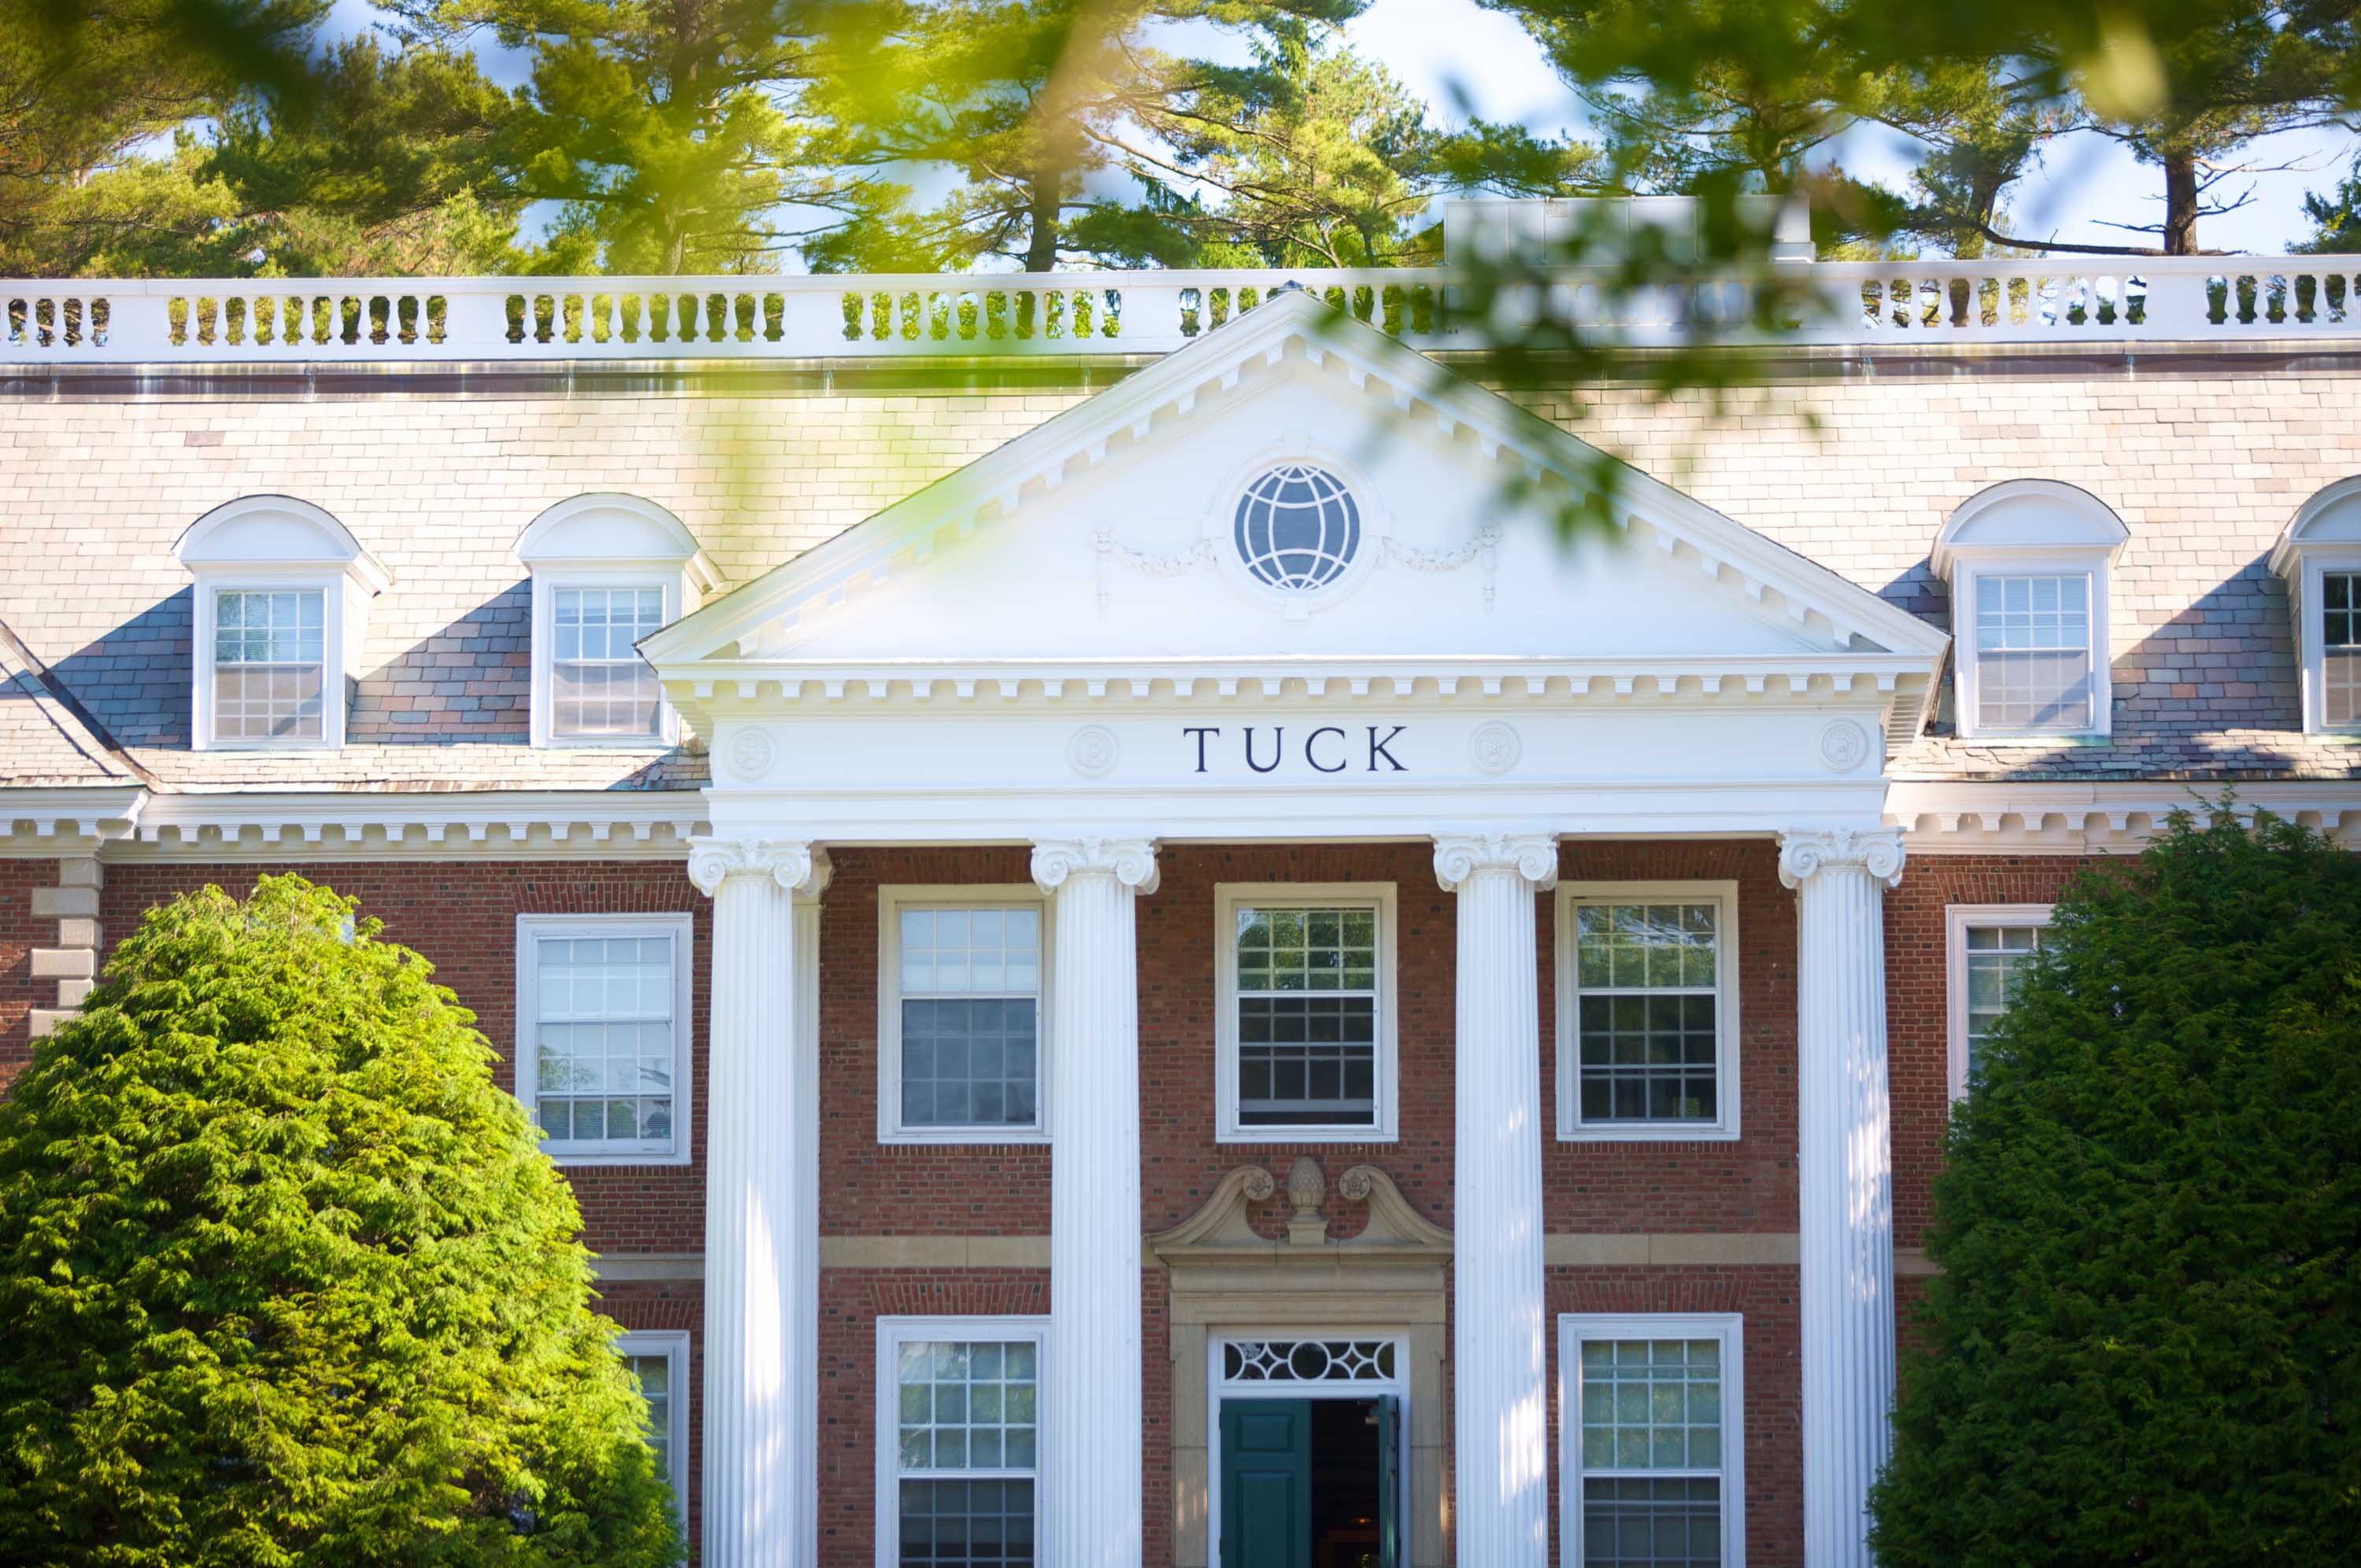 dartmouth tuck admissions essays Dartmouth / tuck essay topic analysis 2017 dartmouth / tuck essay topic analysis 2017-2018 let's take a closer look at each of this season's dartmouth / tuck.